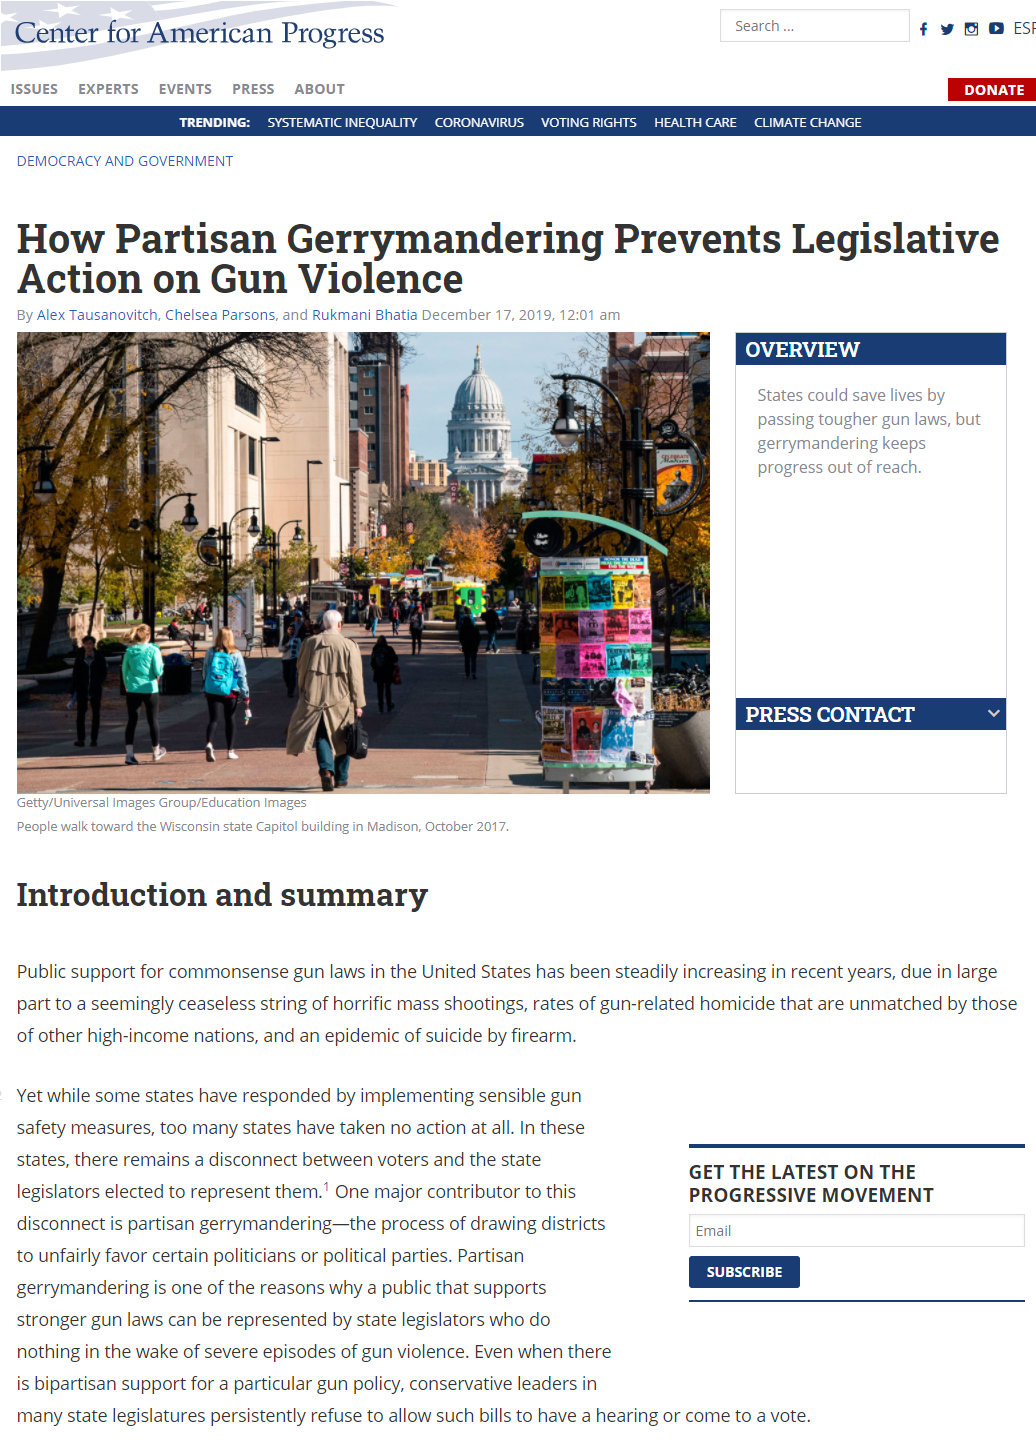 How Partisan Gerrymandering Prevents Legislative Action on Gun Violence